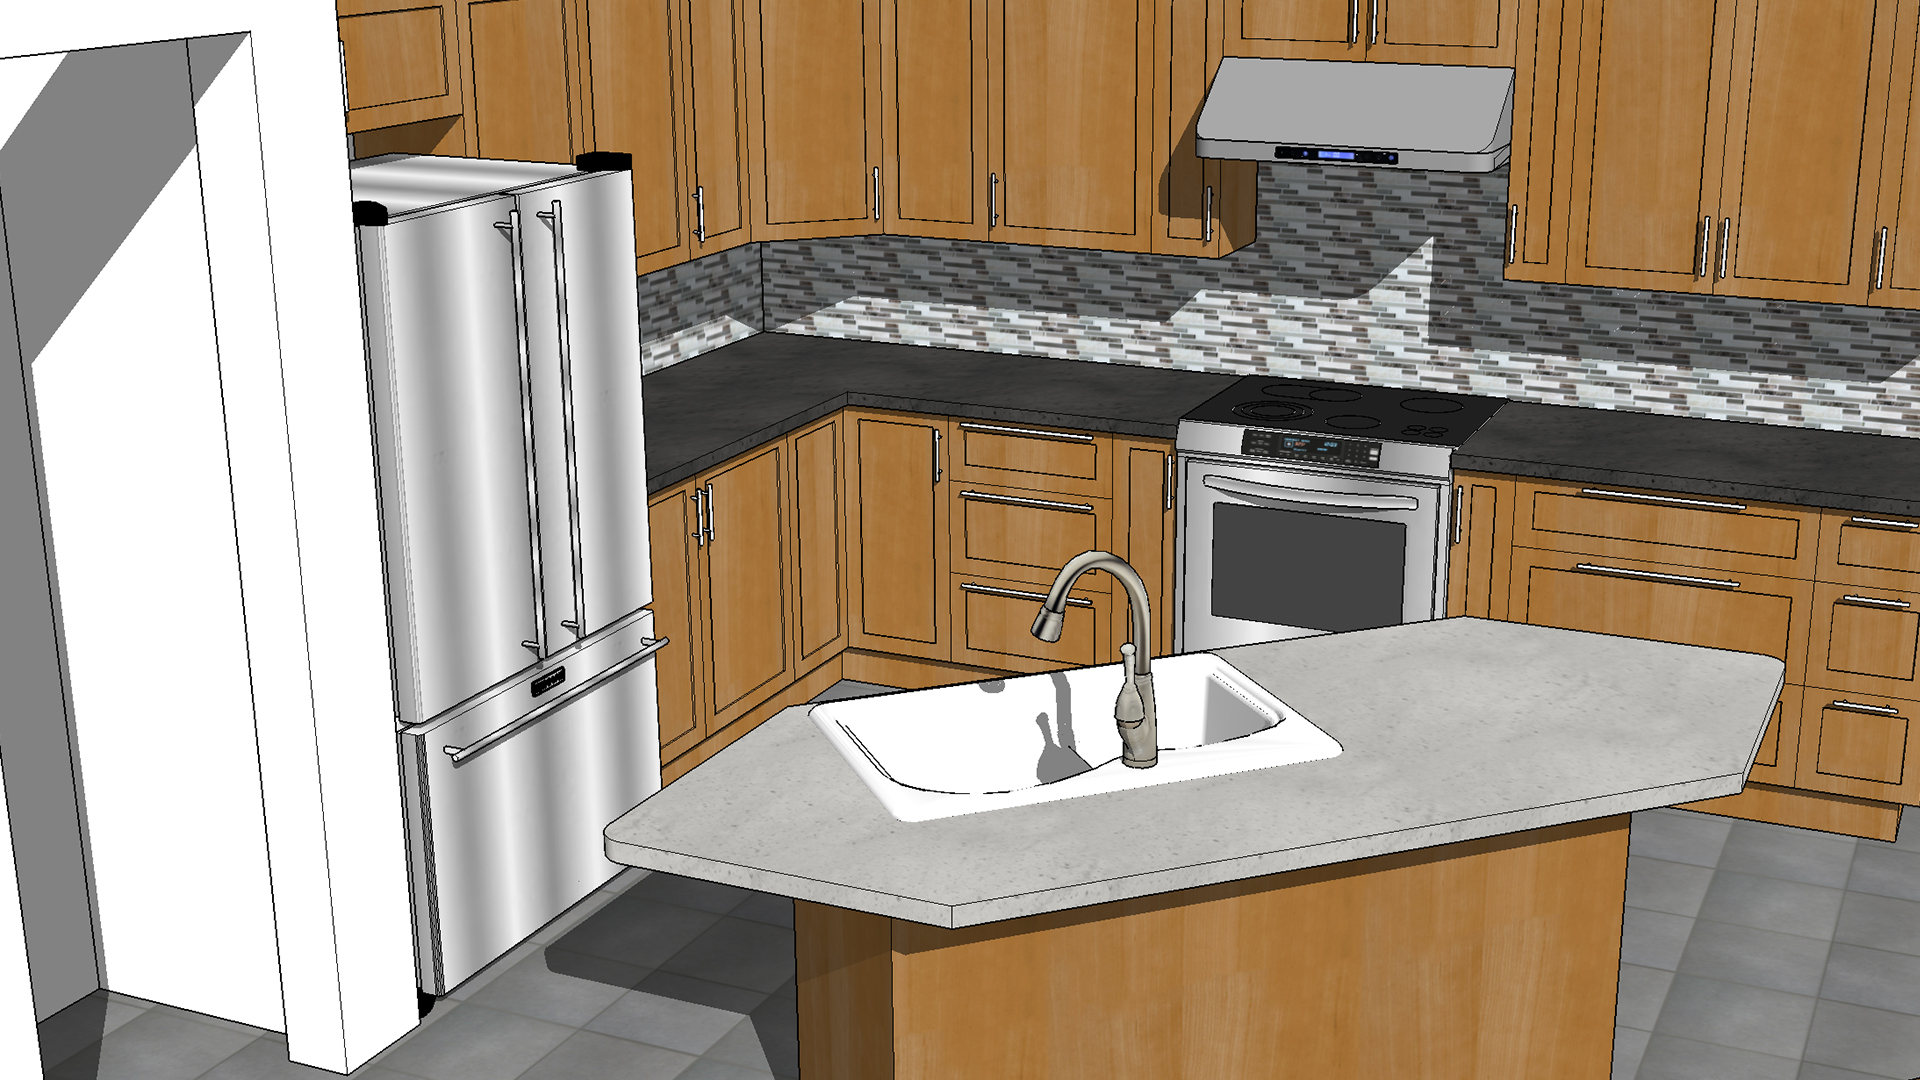 Sketchup kitchen design for Some kitchen designs